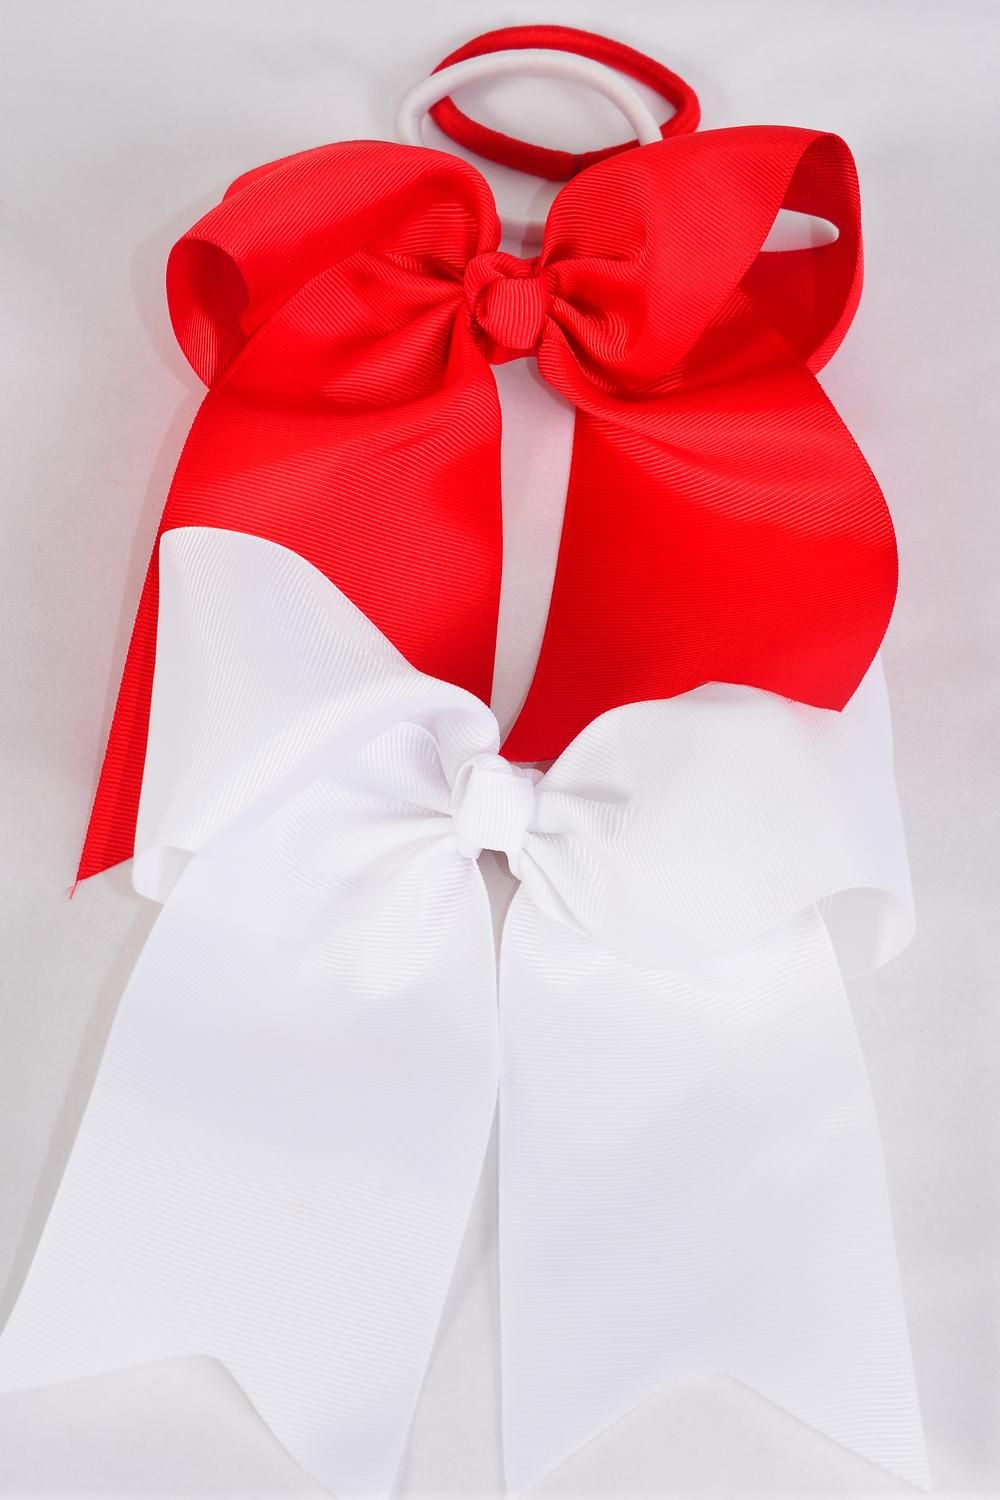 "Hair Bow Extra Jumbo Long Tail Cheer Type Bow Elastic Red & White Mix Grosgrain Bow-tie/DZ **Red & White** Elastic,Size-6.5""x 6"",6 of each Color Asst,Clip Strip & UPC Code"